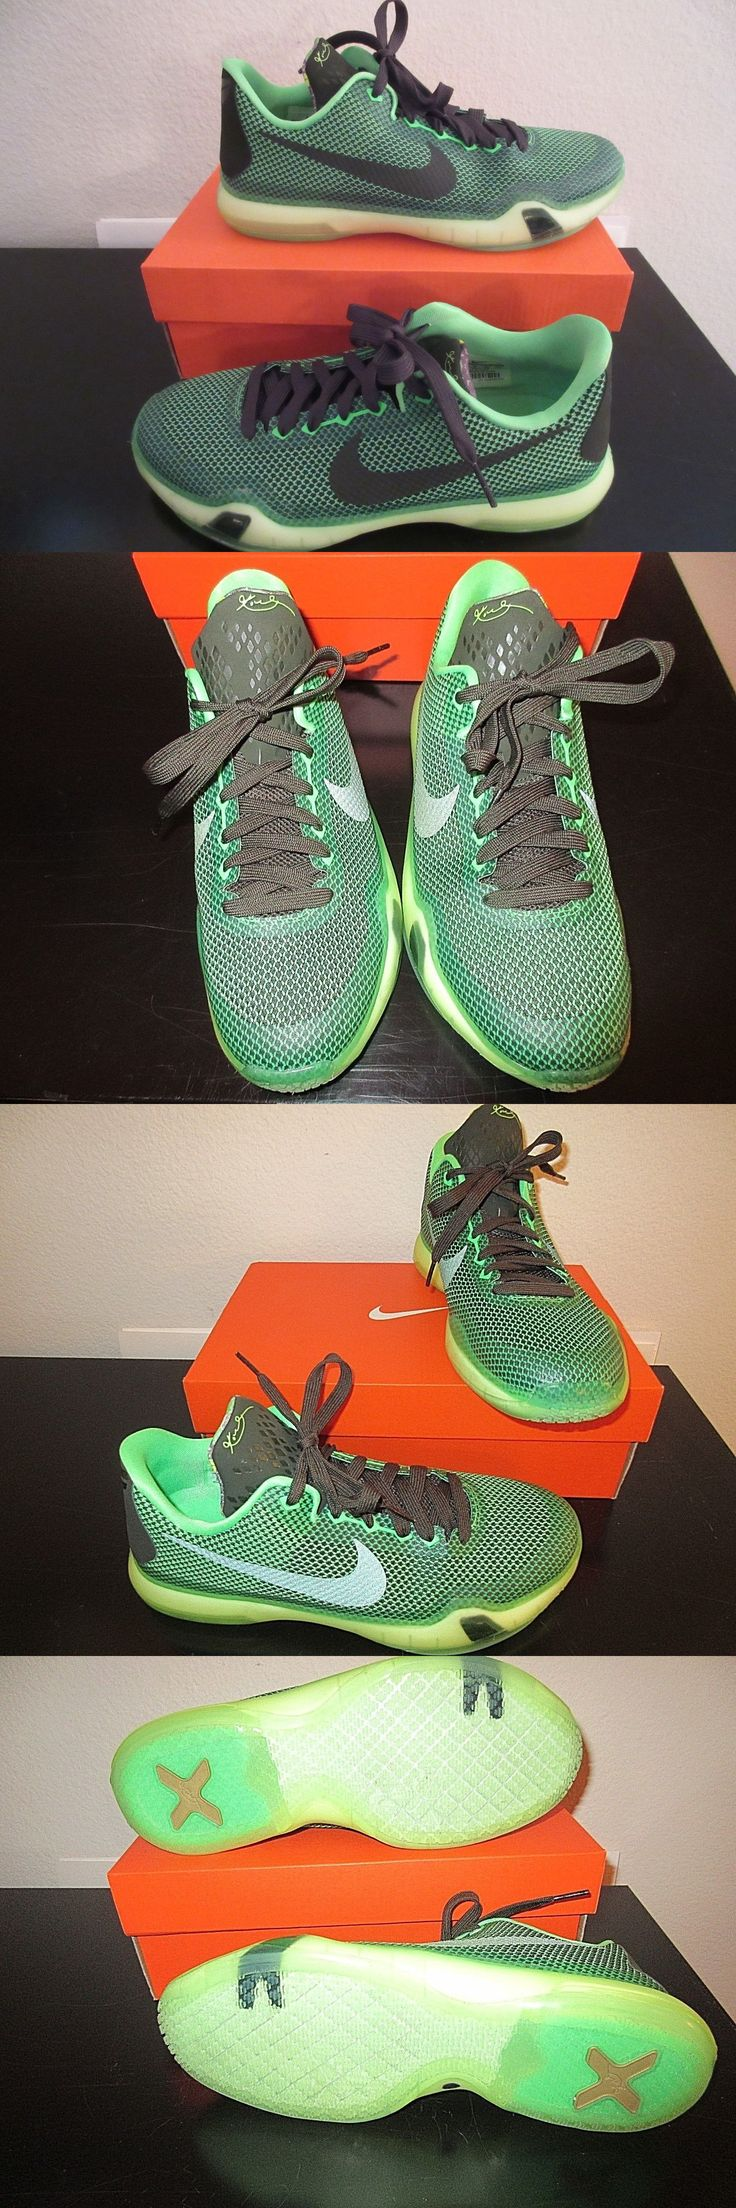 23aacd042d6044 ... shopping youth 158973 nike kobe x 10 vino gs basketball youth us 7 poison  green new